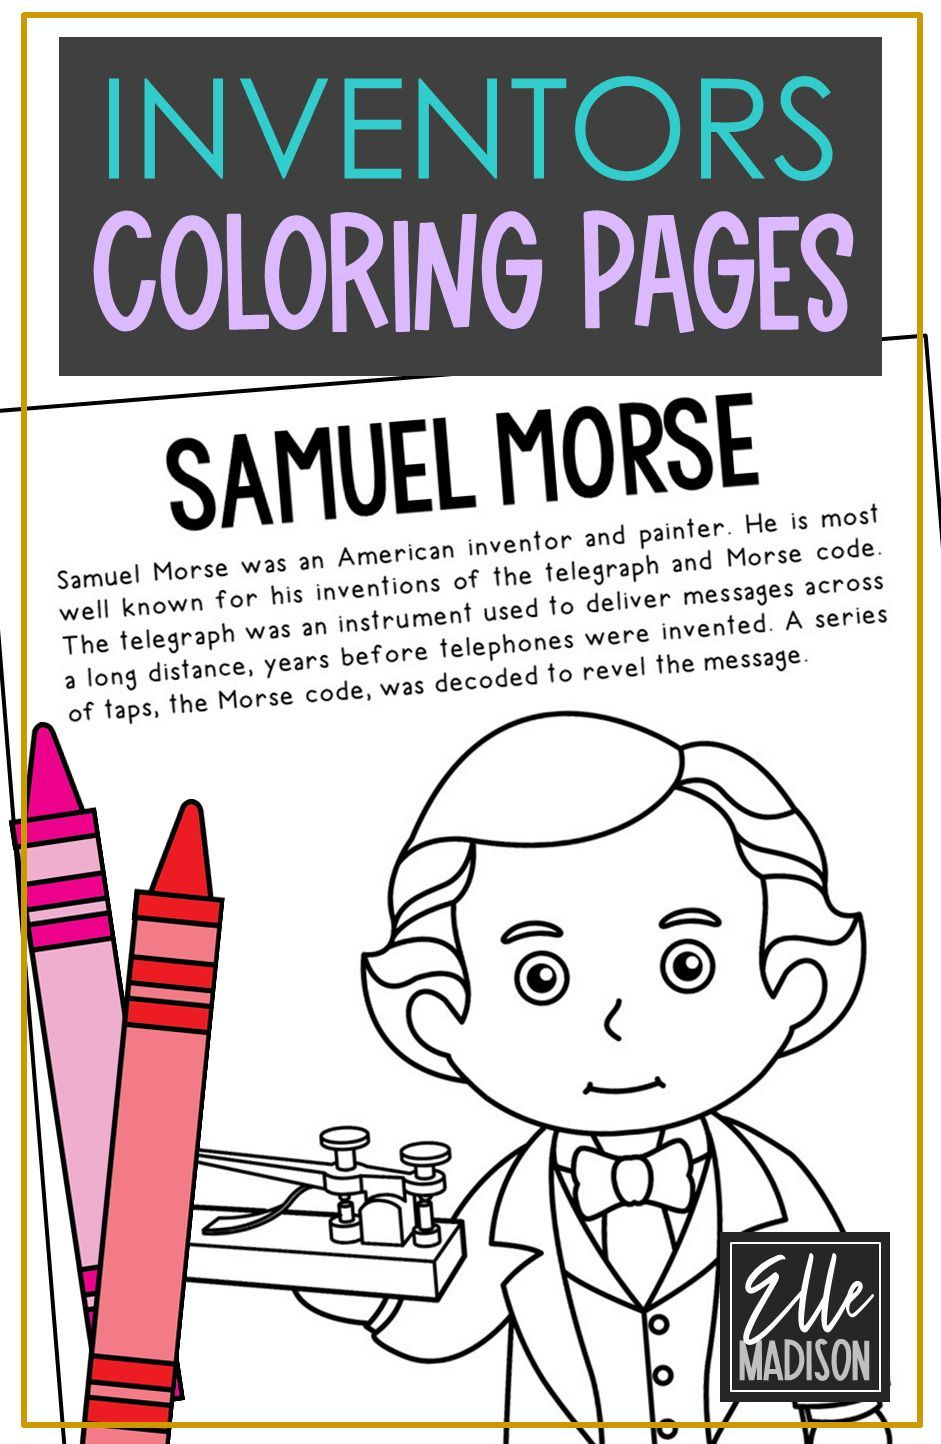 Samuel Morse Inventors Stem Steam Coloring Book Pages Posters For Kids Elementary Science Crafts History Classroom Distance Learning Project Based Learning